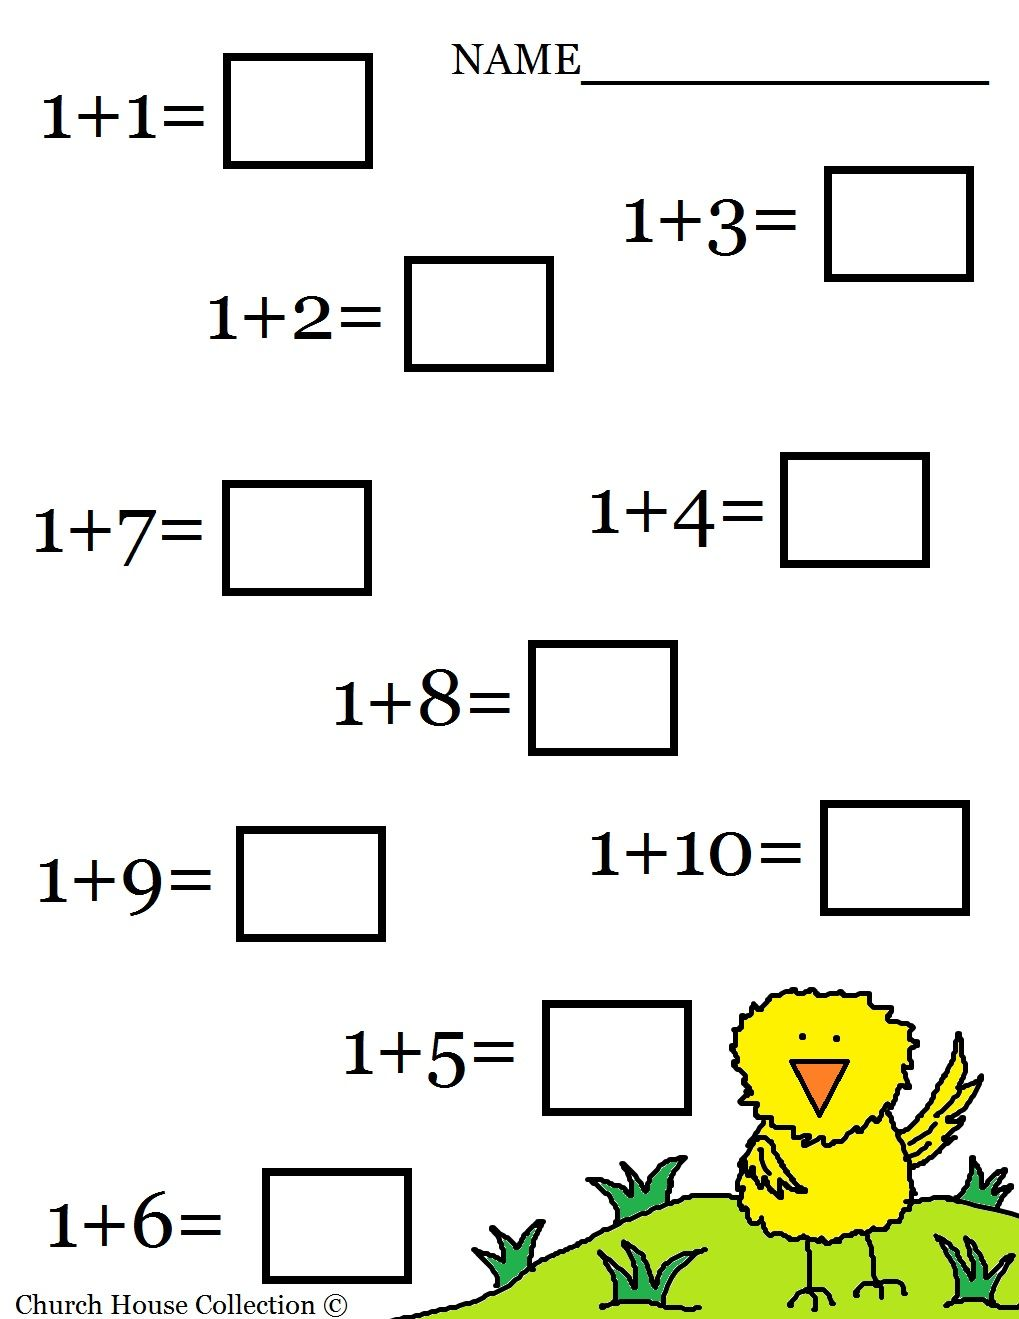 Aldiablosus  Picturesque  Images About Worksheets  Math On Pinterest  Math Sheets  With Fair  Images About Worksheets  Math On Pinterest  Math Sheets Math Worksheets For Kindergarten And Simple Addition With Amusing Blank Handwriting Worksheet Also Place Value Worksheets Free Printable In Addition Percentages Worksheets Ks And Science Worksheet For Grade  As Well As English Printable Worksheets For Grade  Additionally Color Worksheet For Kids From Pinterestcom With Aldiablosus  Fair  Images About Worksheets  Math On Pinterest  Math Sheets  With Amusing  Images About Worksheets  Math On Pinterest  Math Sheets Math Worksheets For Kindergarten And Simple Addition And Picturesque Blank Handwriting Worksheet Also Place Value Worksheets Free Printable In Addition Percentages Worksheets Ks From Pinterestcom